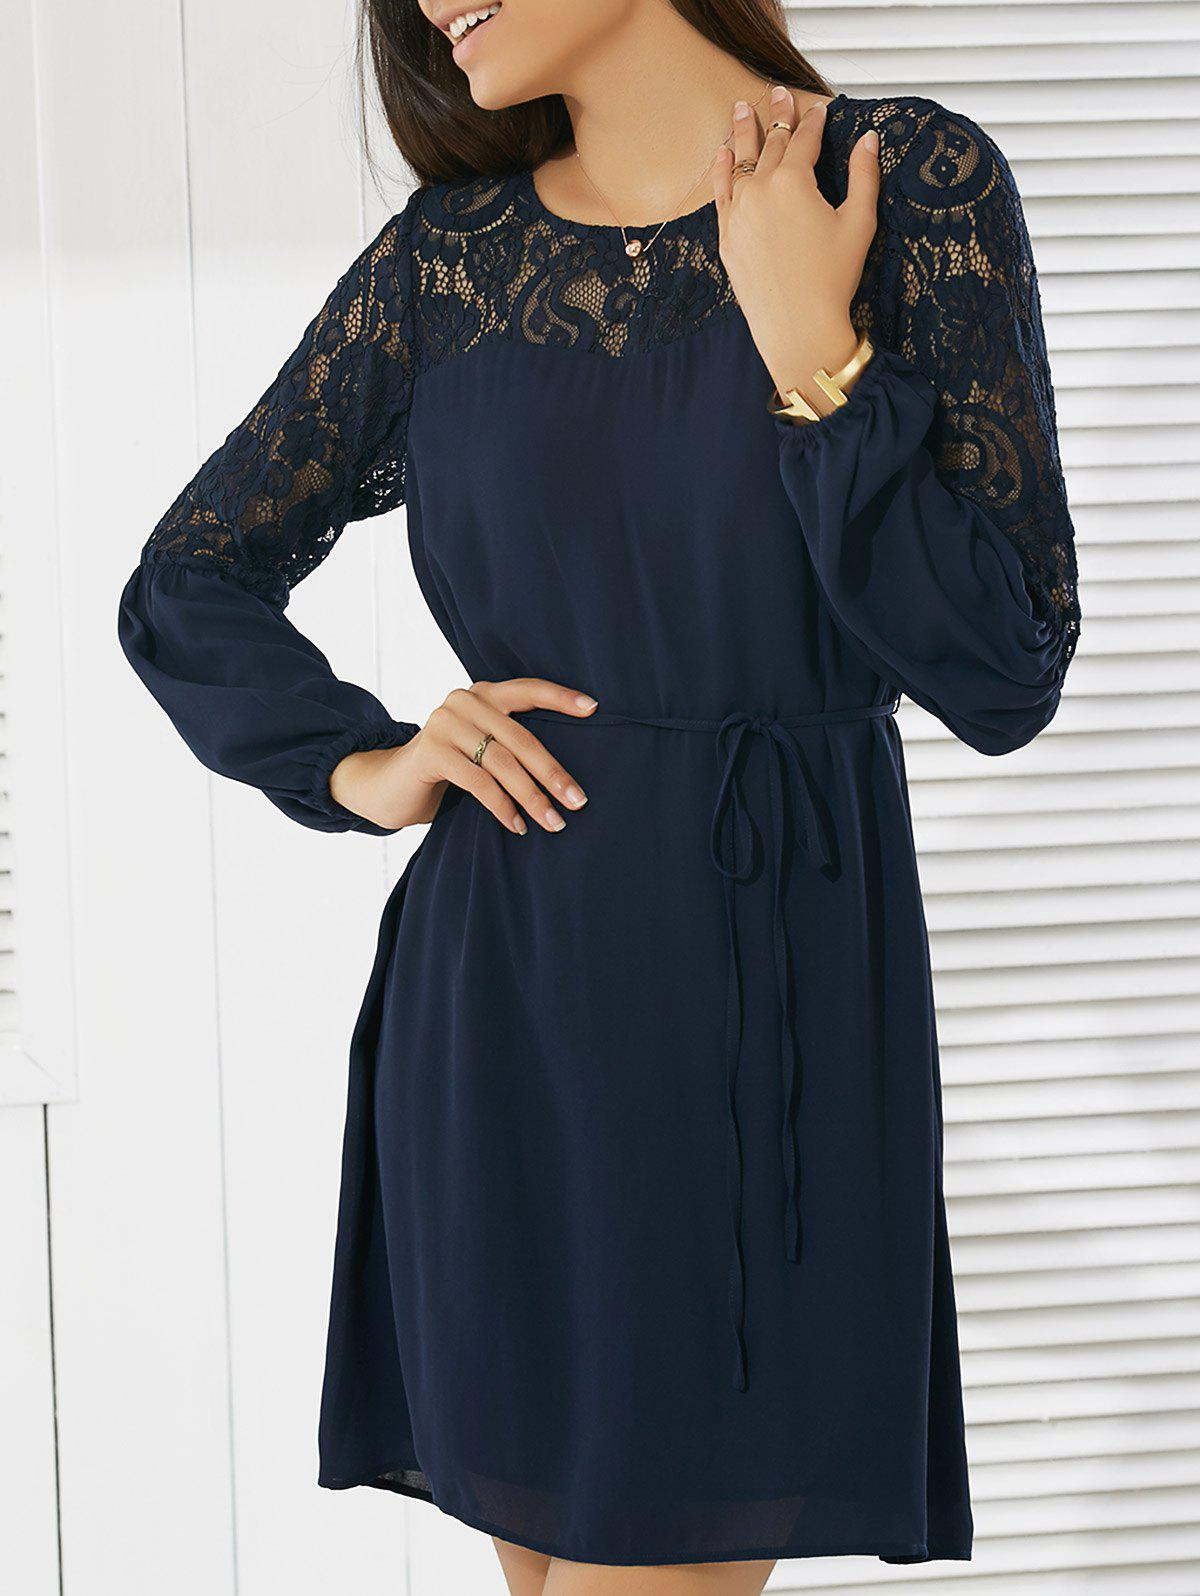 Chic Casual Round Neck Long Sleeve Lace Dress